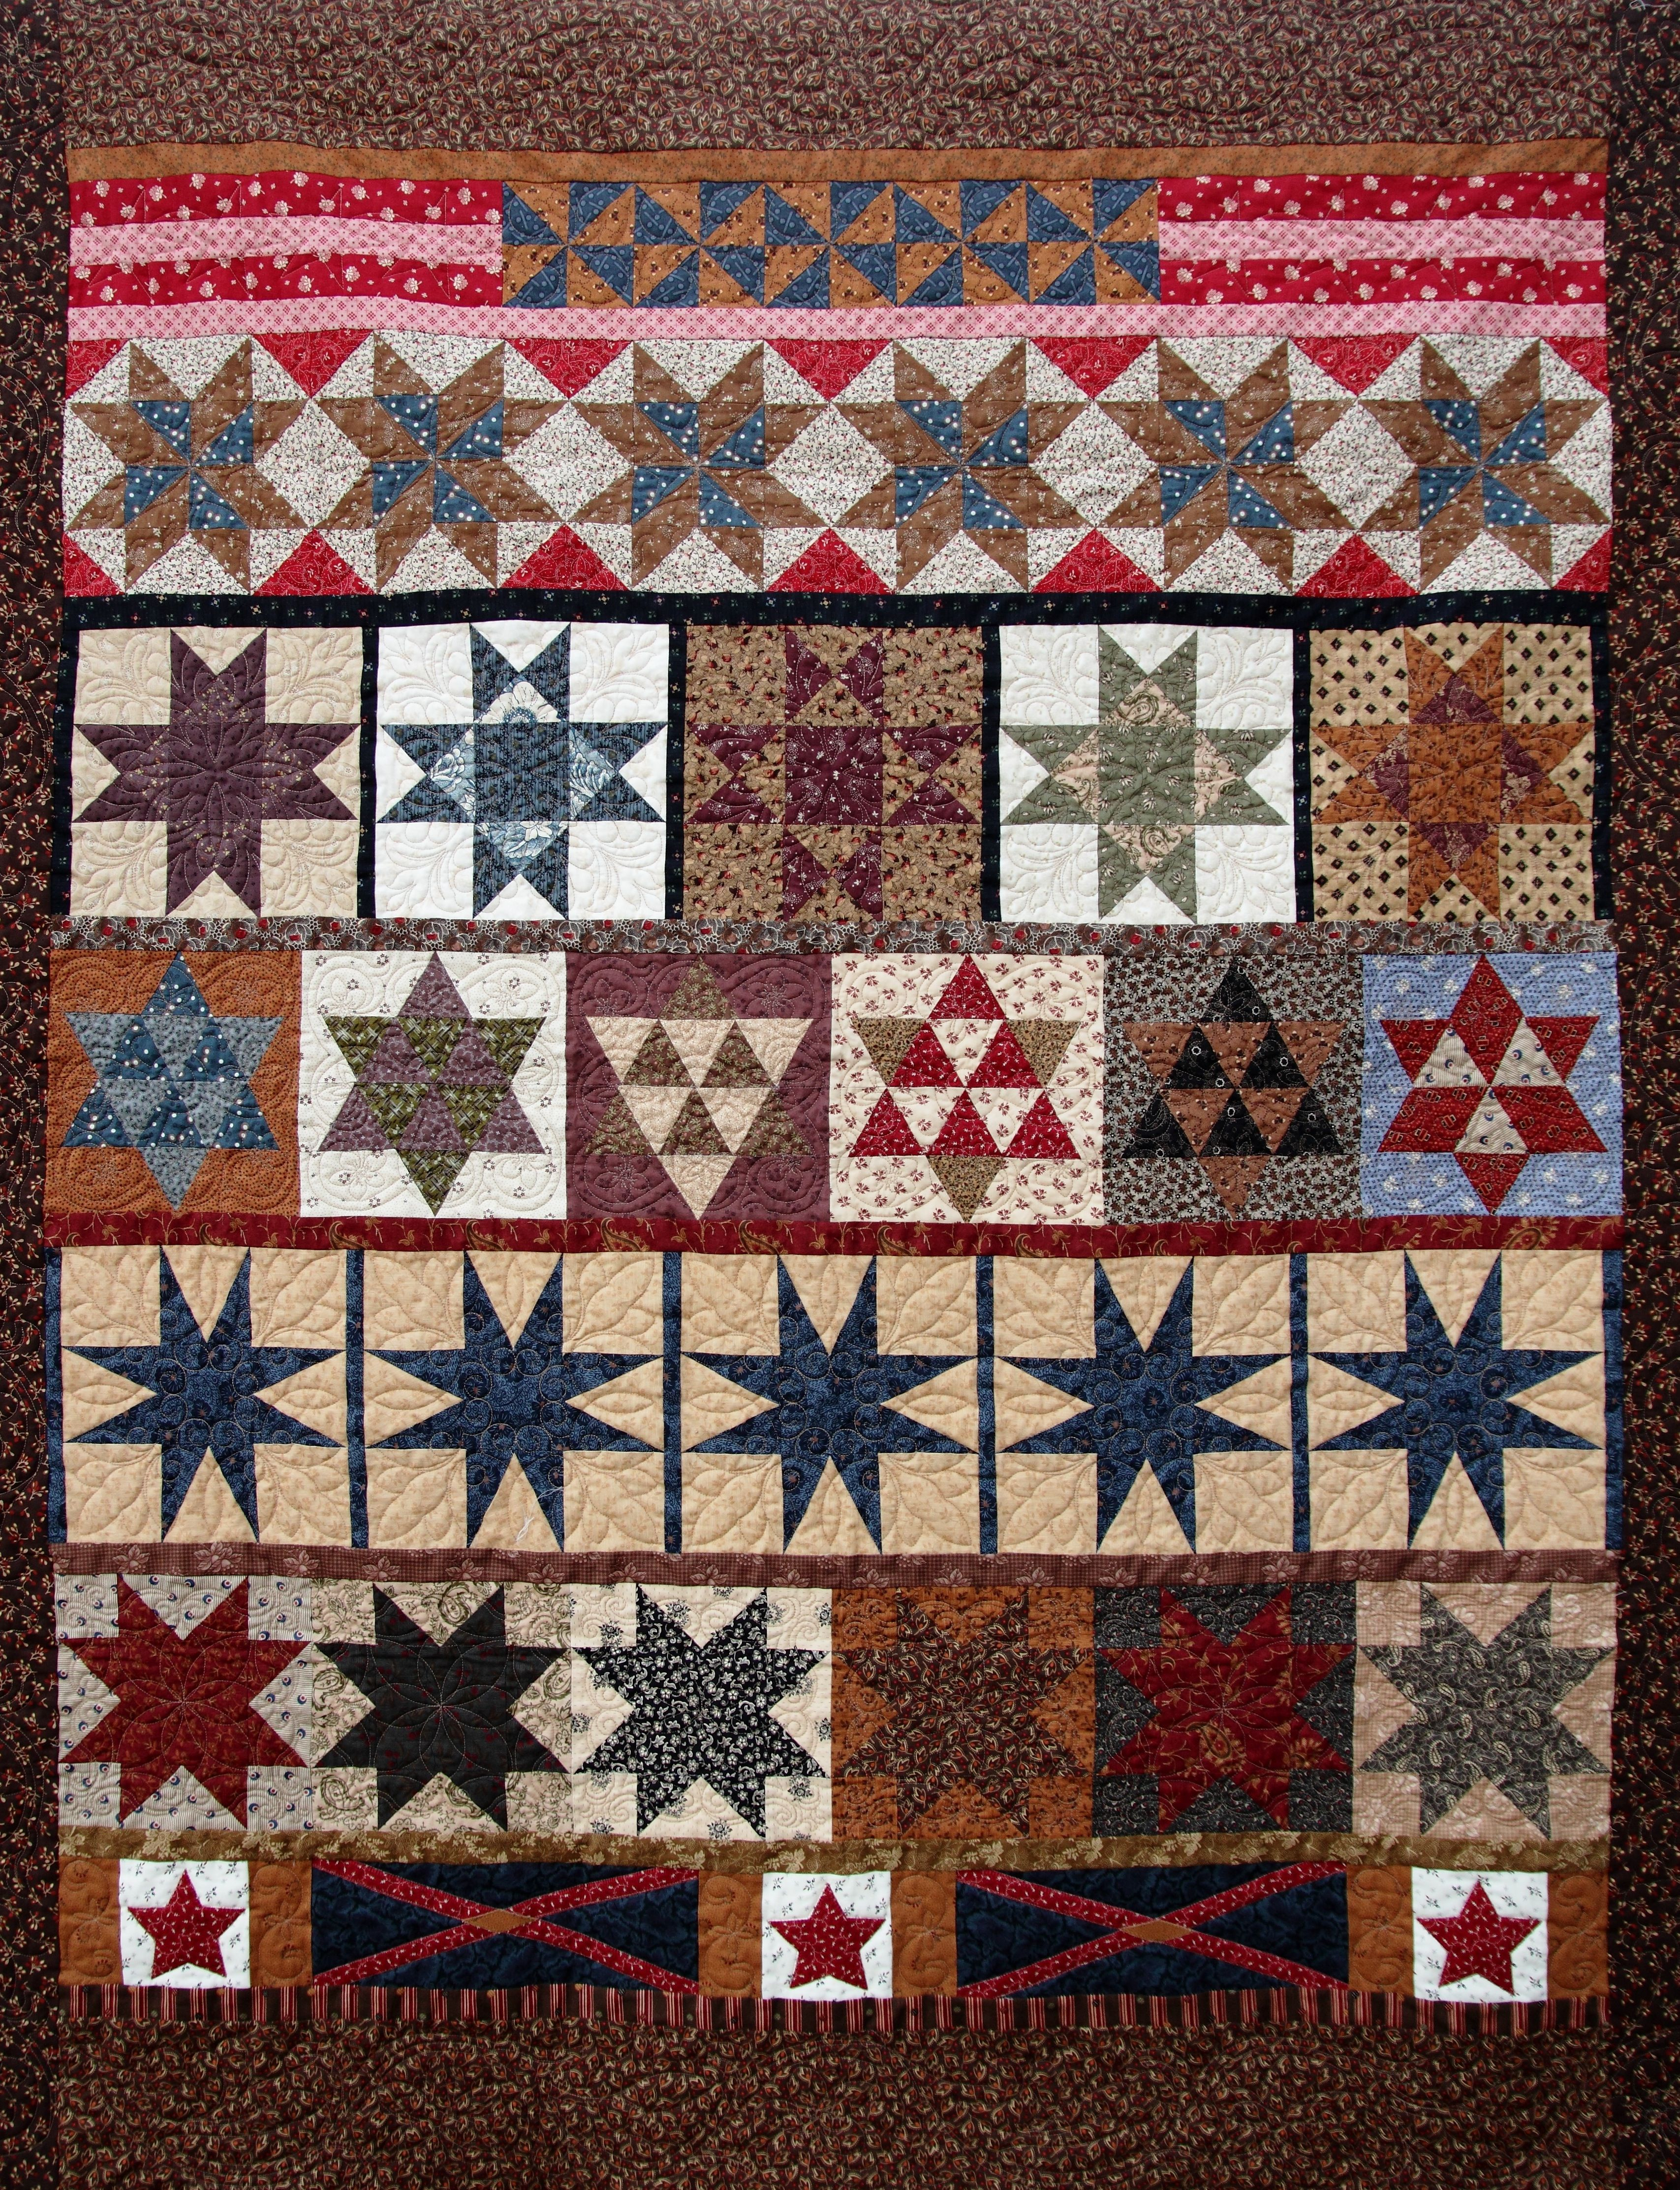 Civil War Stars Row by Row Quilt   Common Threads Quilts   Blog